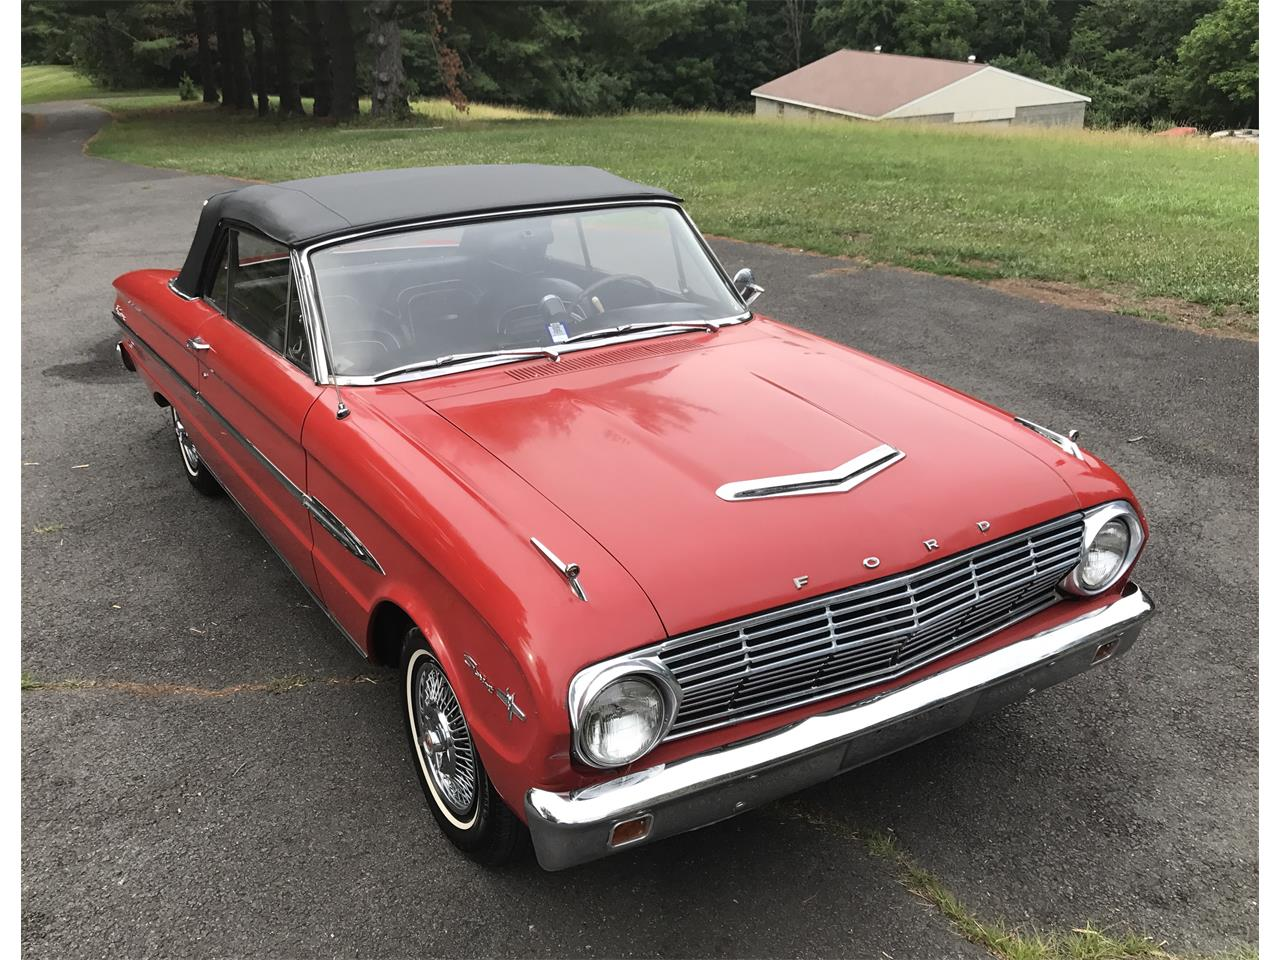 For Sale: 1963 Ford Falcon in Harpers Ferry, West Virginia